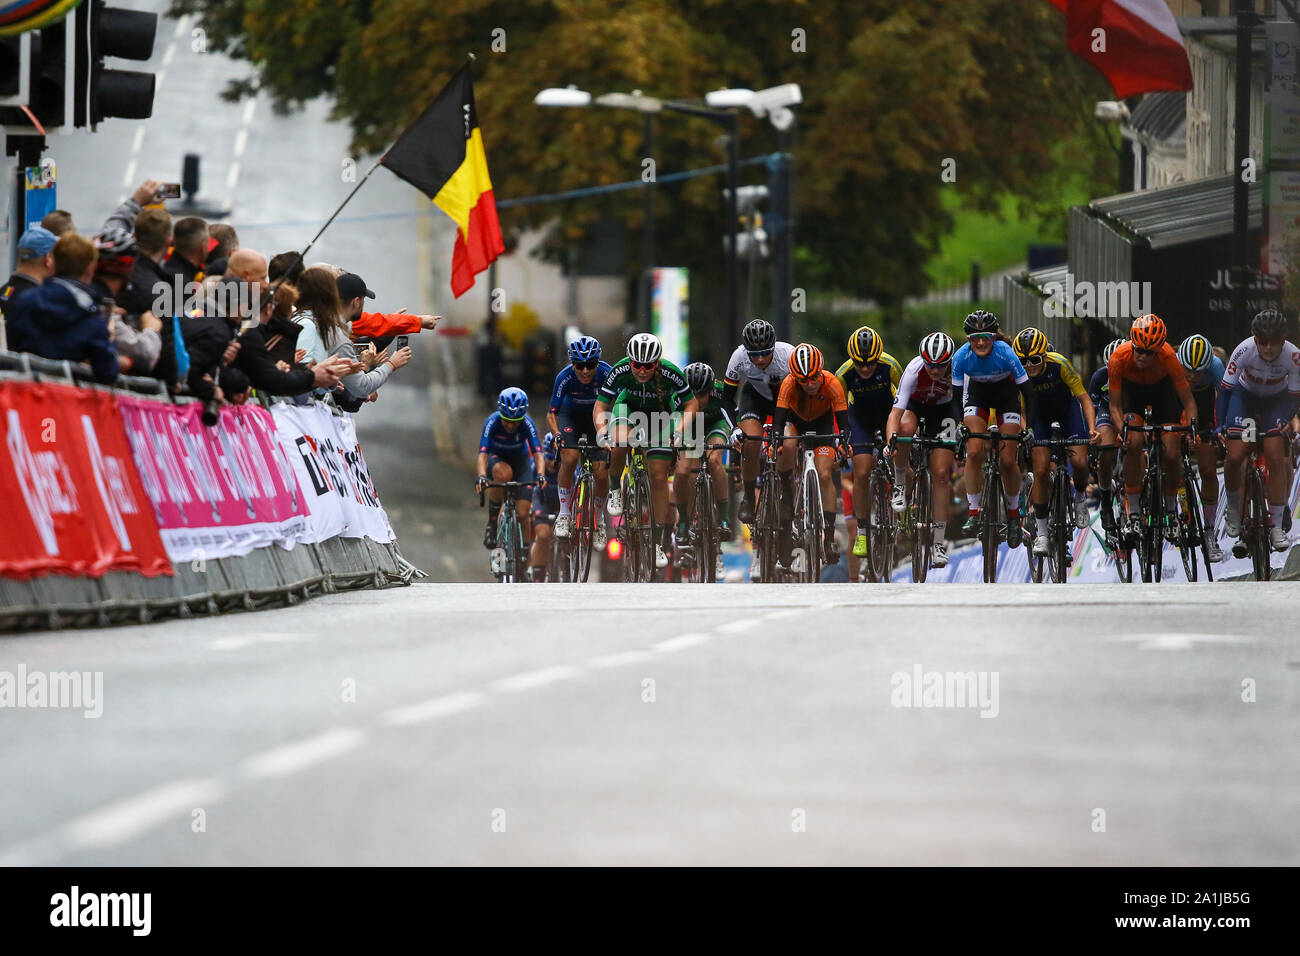 Harrogate, UK. 27th September 2019. The peloton chases race leaders down in the closing meters of the race in the 2019 UCI Road World Championships Womens Junior Road Race. September 27, 2019 Credit Dan-Cooke/Alamy Live News Stock Photo